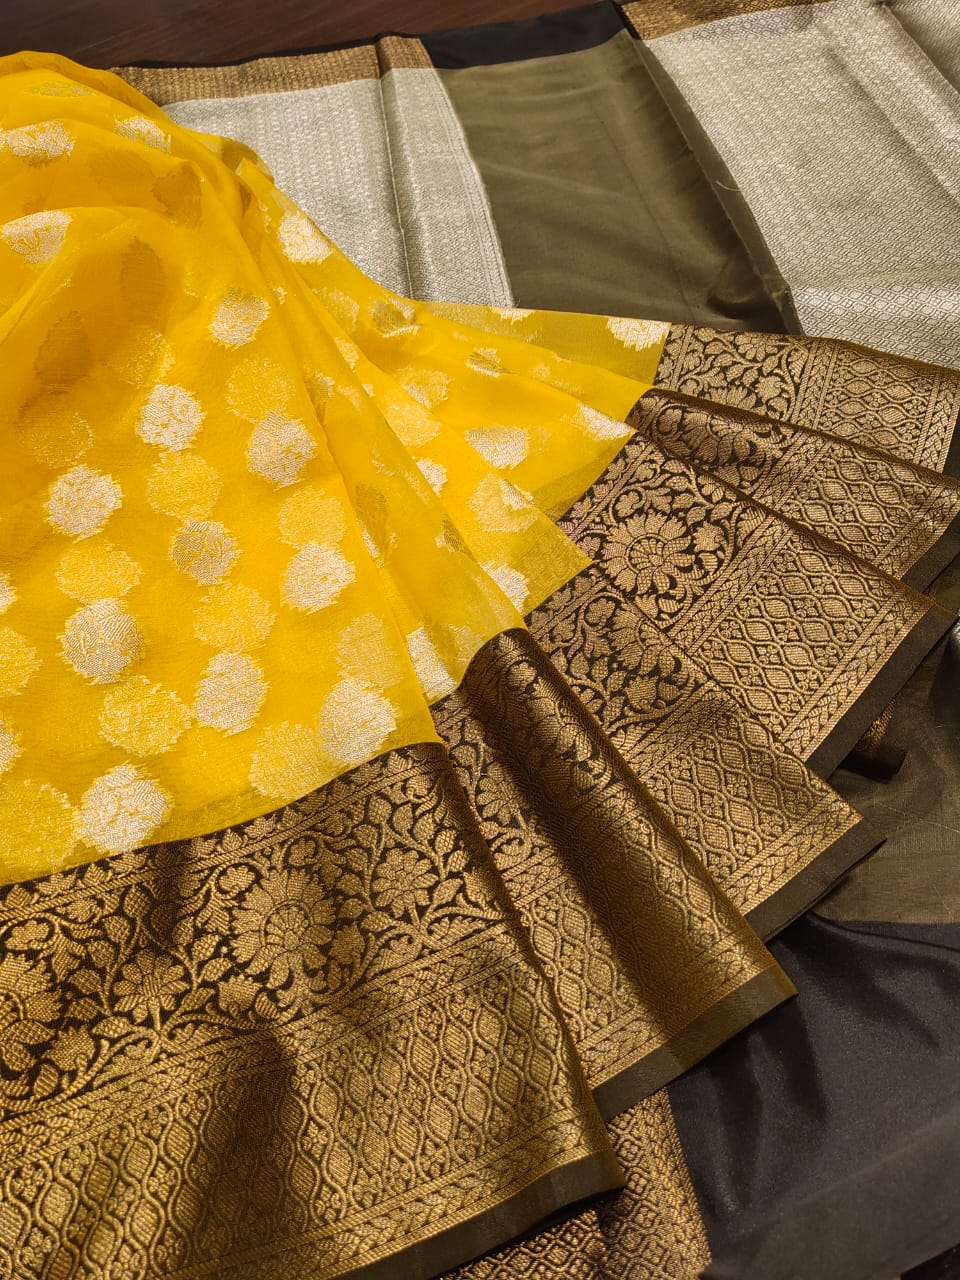 Yellow kora saree with golden zari weaving and silver booties all over